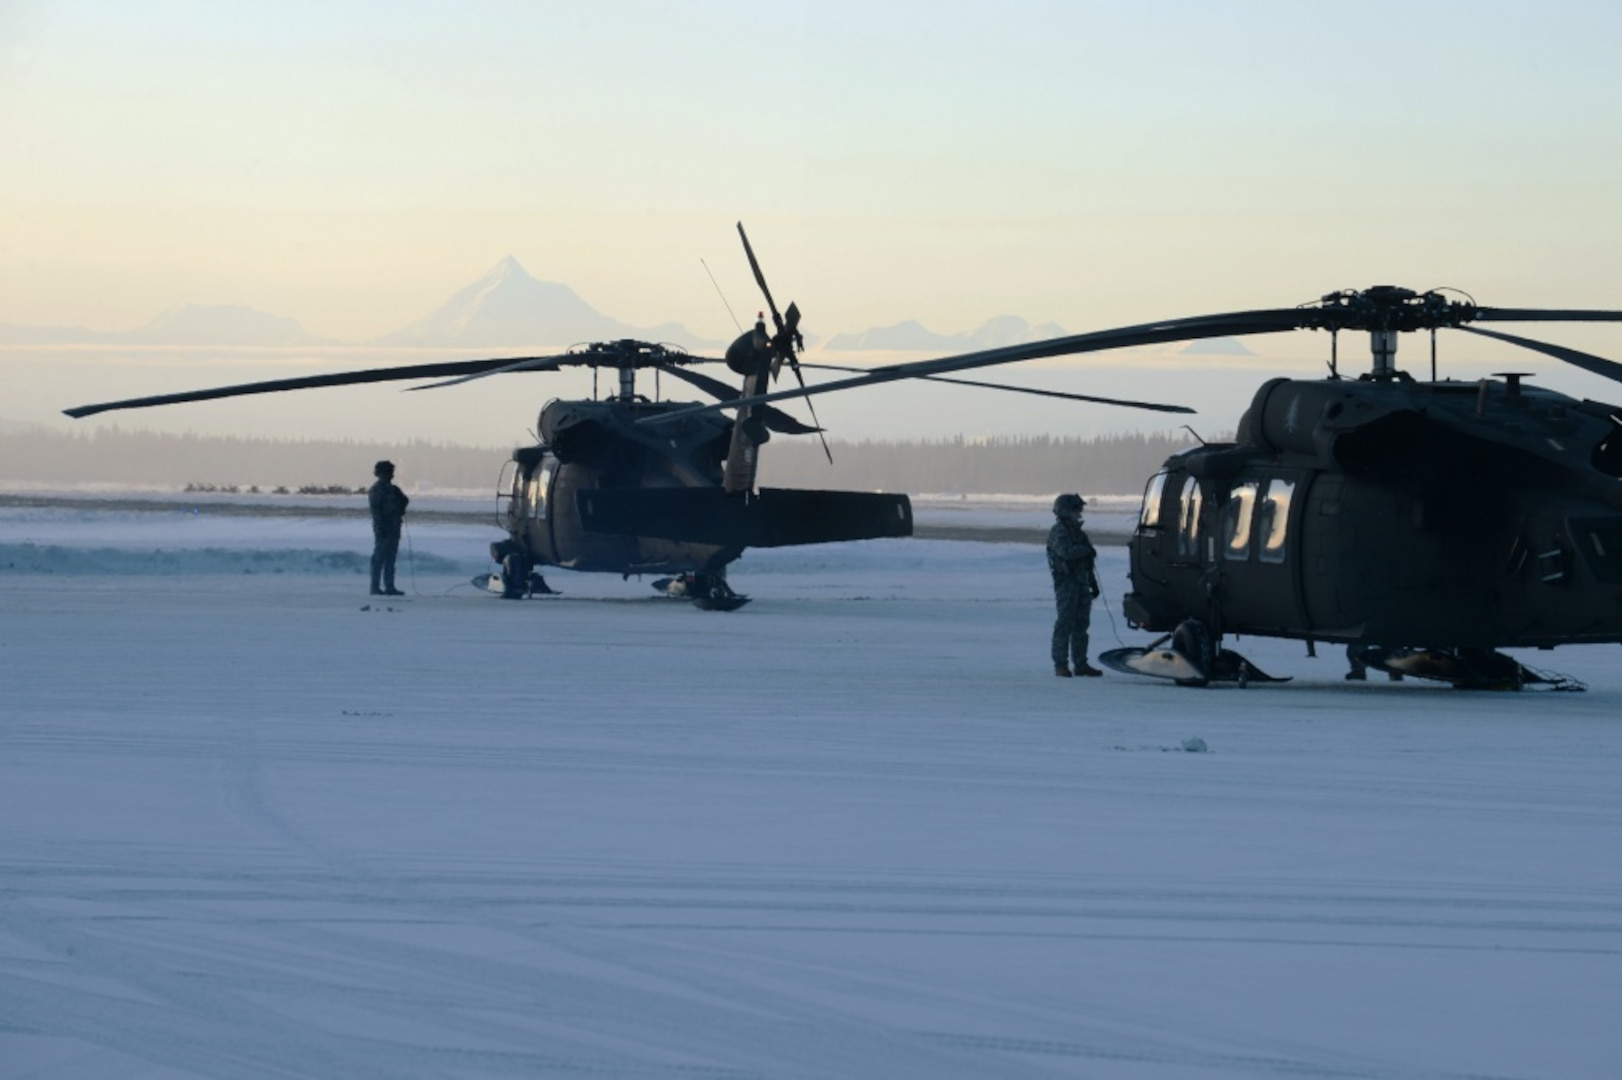 Crew chiefs for the NHARNG's 1/169th General Support Aviation Batallion, stand by their Black Hawks as they try to warm in the sub-zero temperatures at Eielson Air Base, Alaska on Feb. 26.